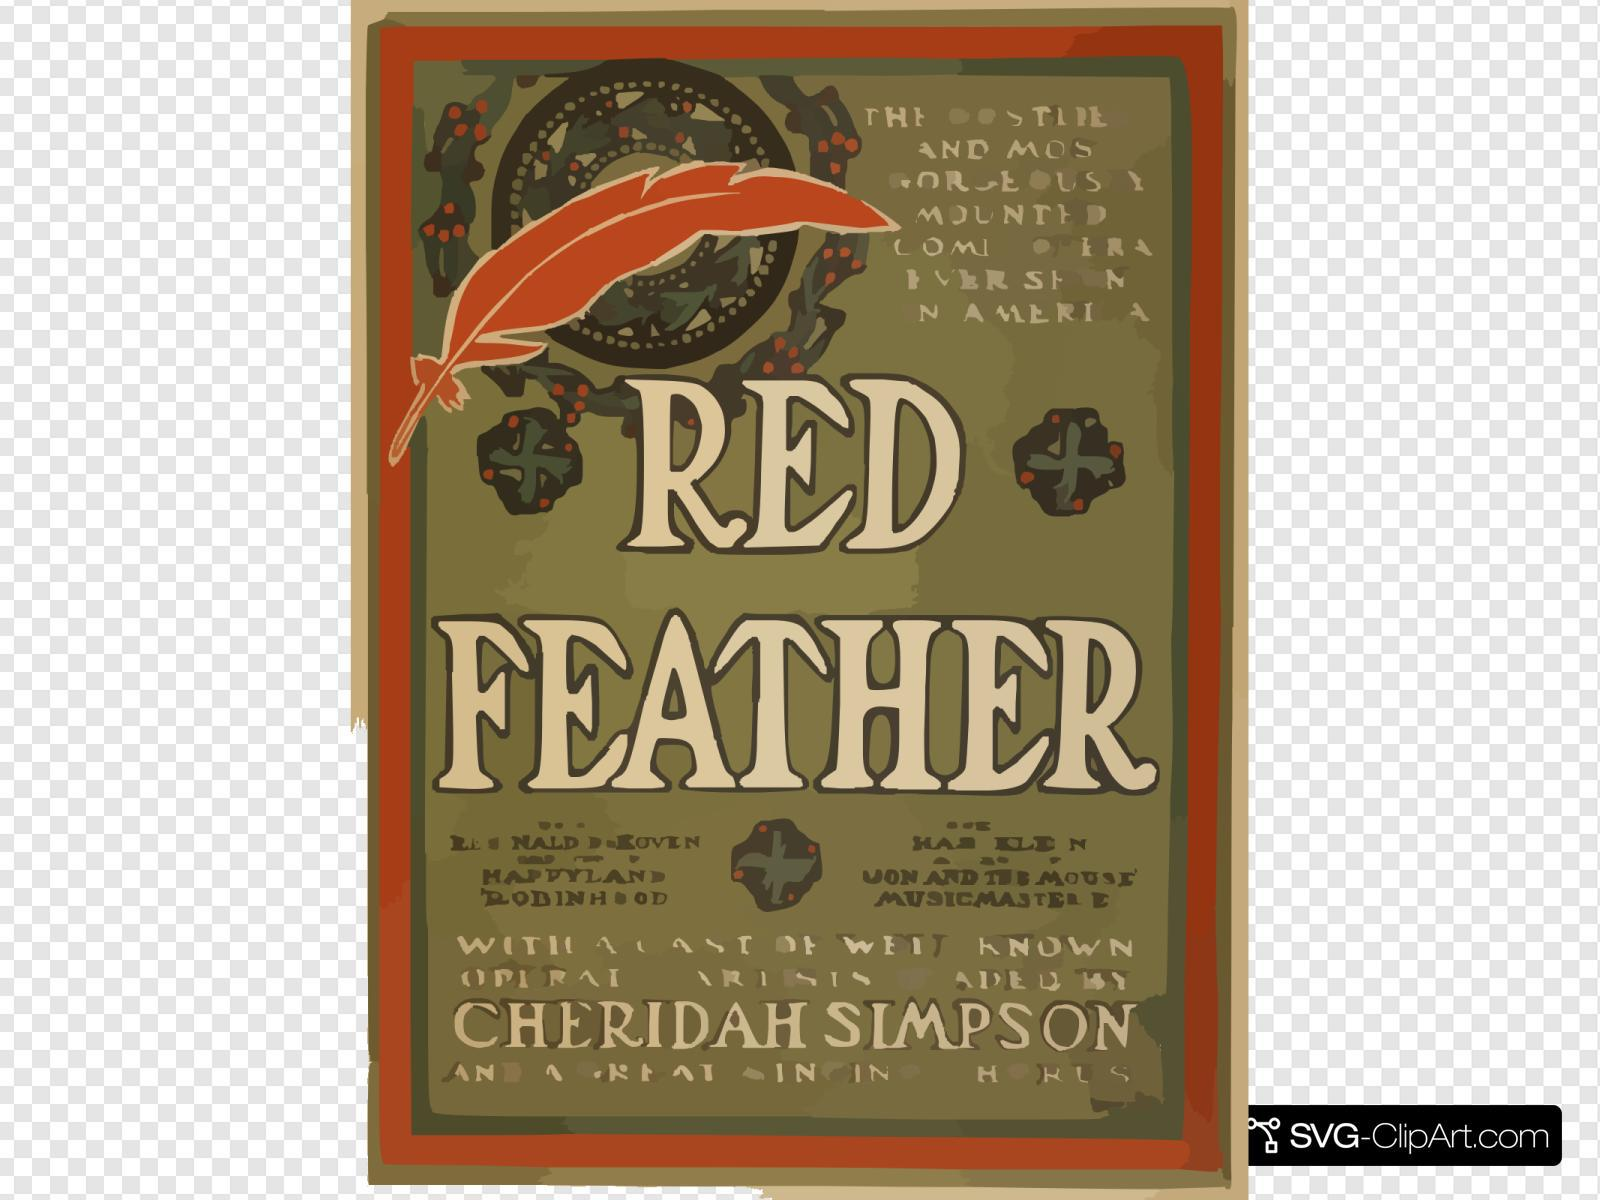 Red Feather The Costilest And Most Gorgeously Mounted Comic Opera Ever Seen In America : With A Cast Of Well Known Operatic Artists Headed By Cheridah Simpson And A Great Singing Chorus.